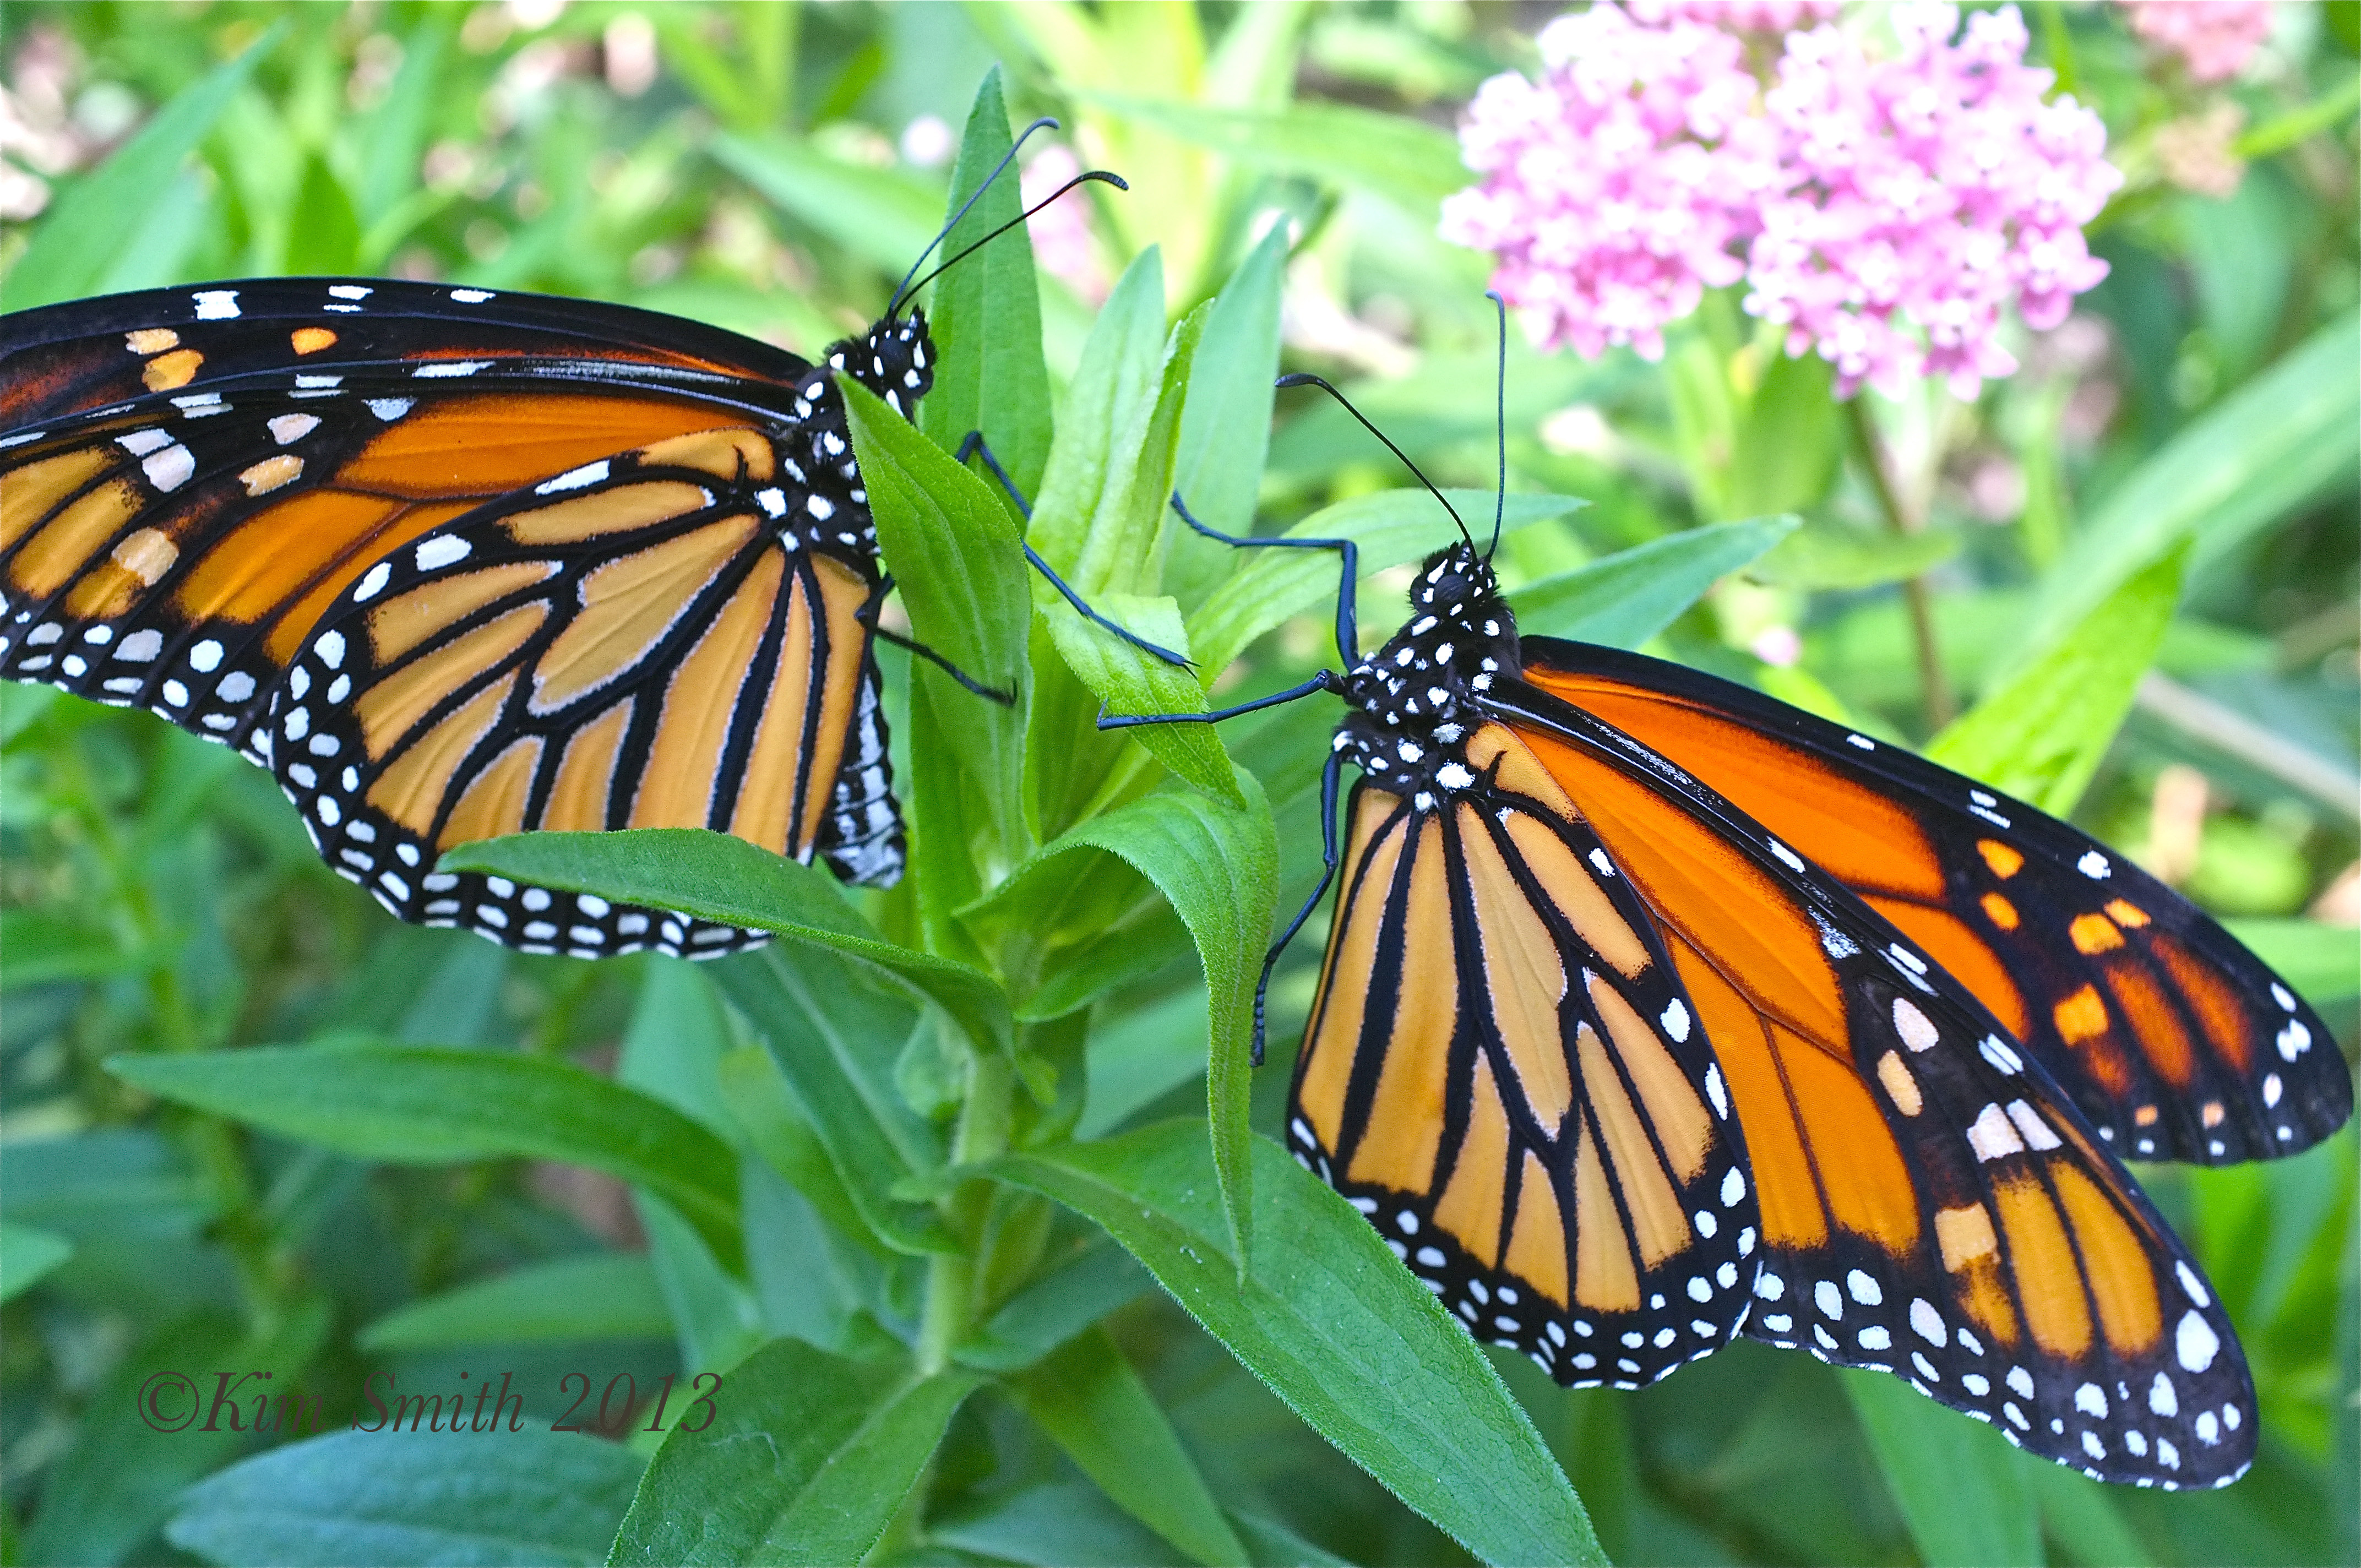 How Exactly is Monsantos Roundup Ravaging the Monarch